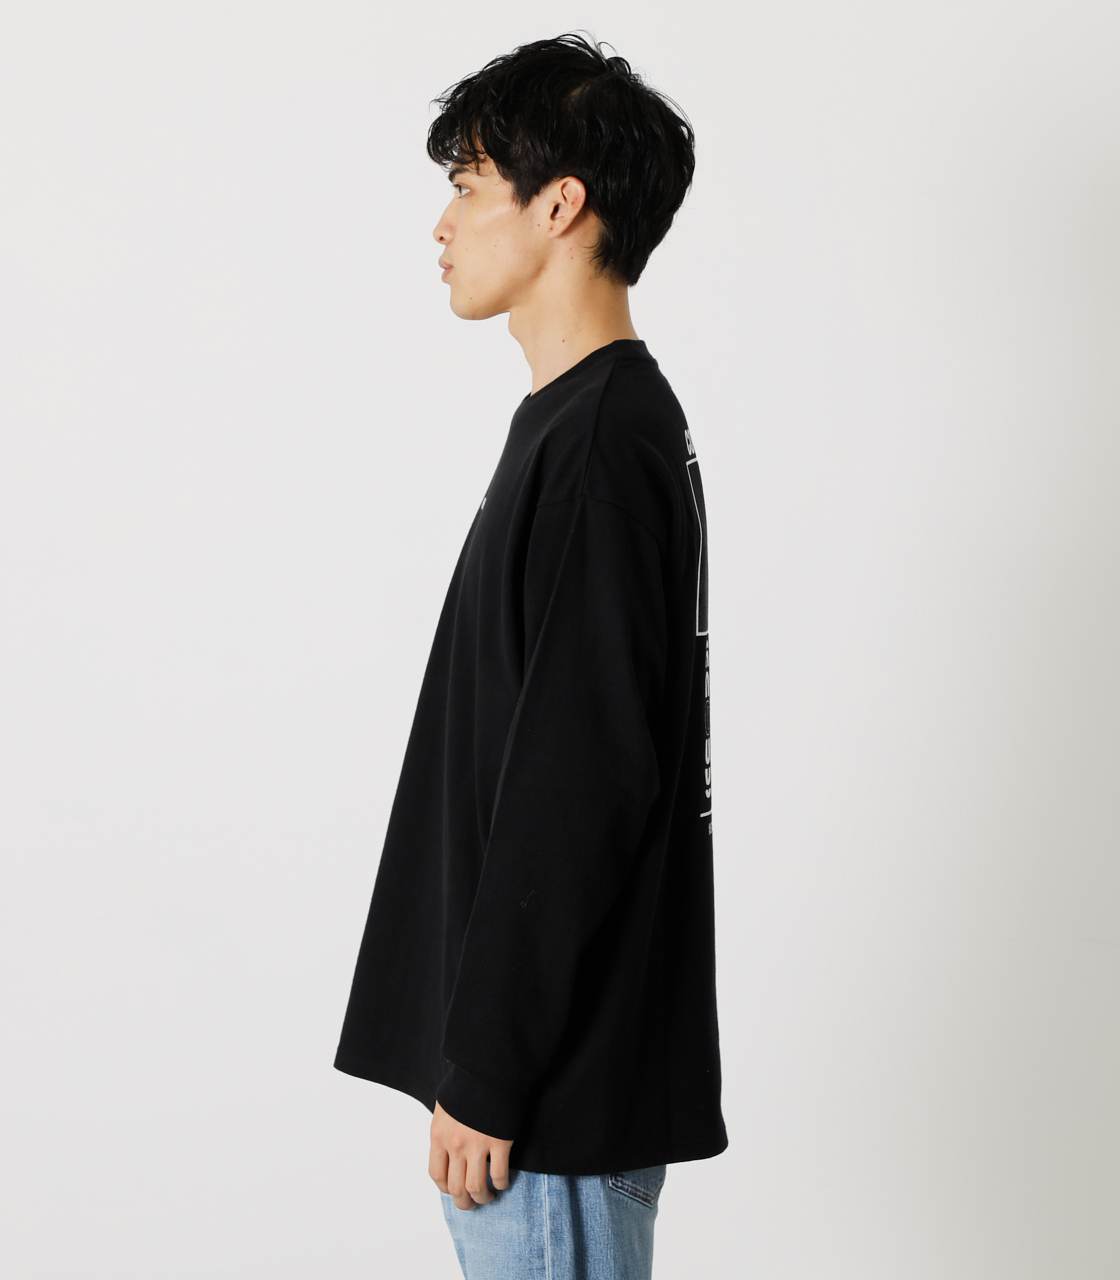 ONE'S HIGH LONG TEE/ワンズハイロングTシャツ 詳細画像 BLK 6